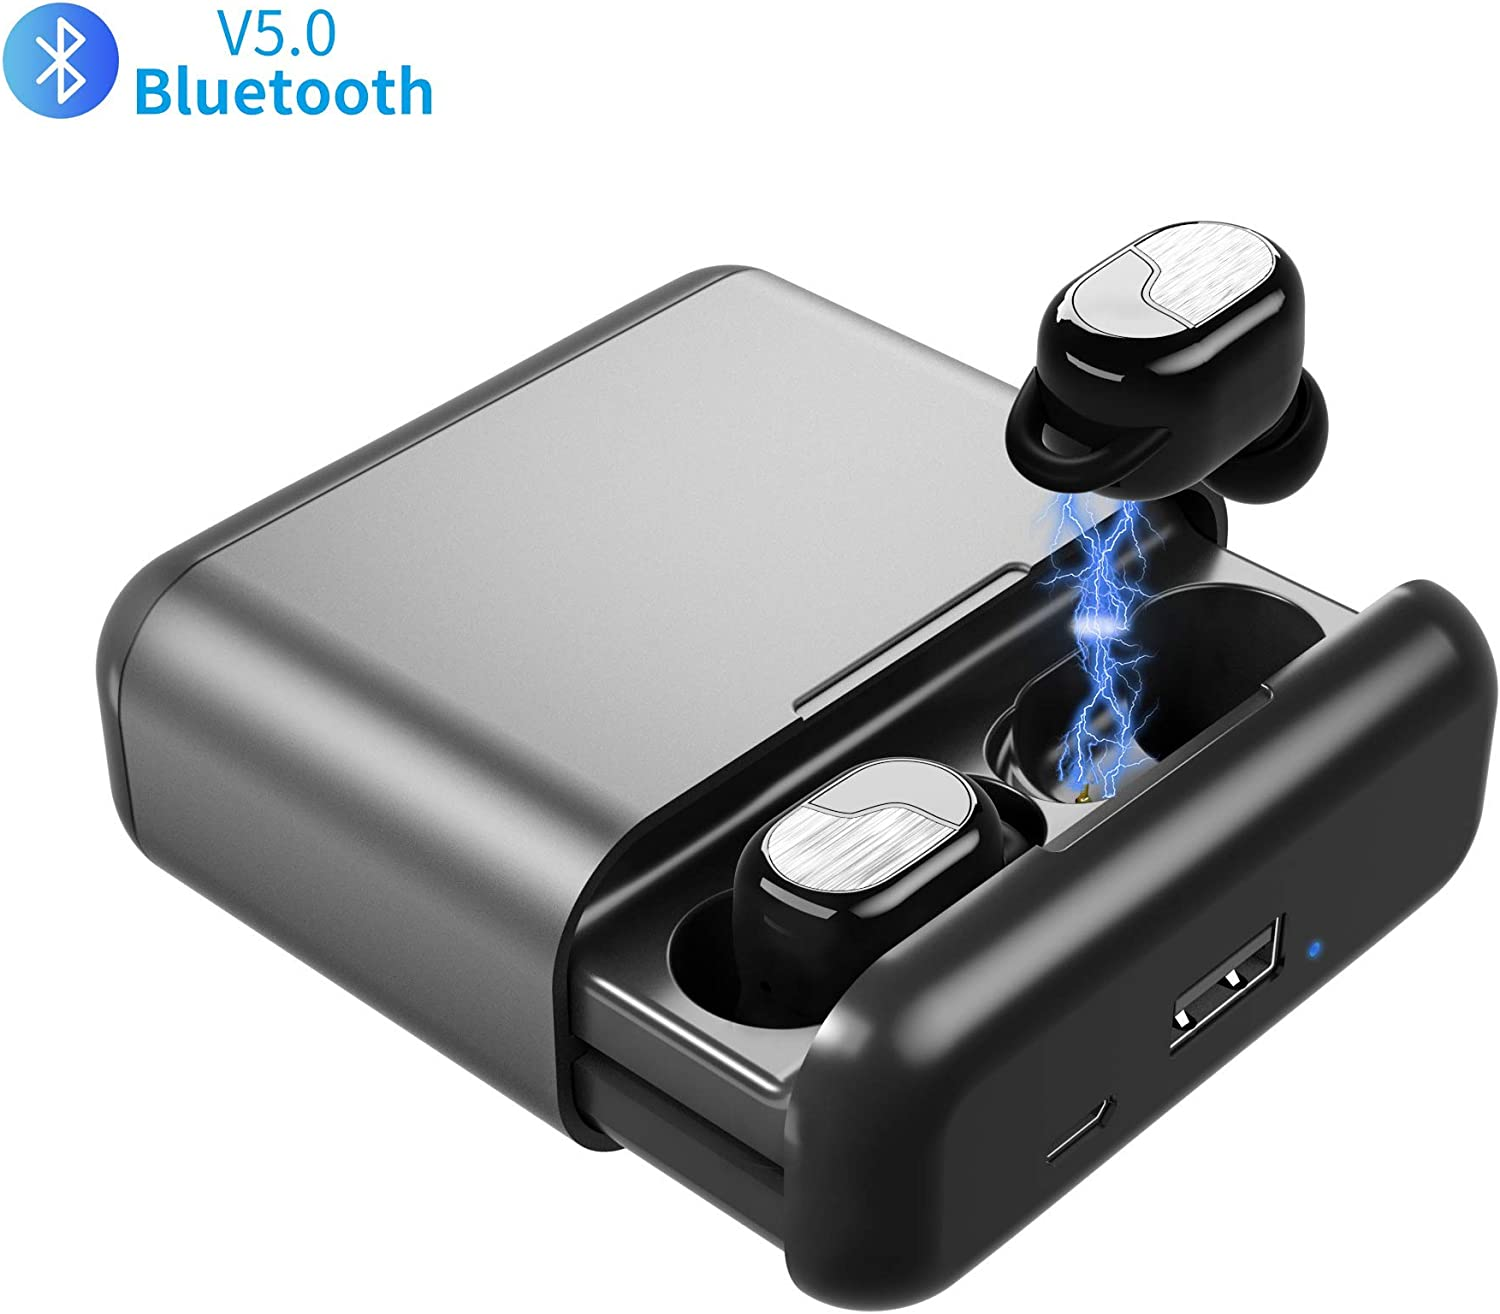 True Wireless Earbuds, Bulife TWS Bluetooth 5.0 Headphones, in-Ear Stereo Wireless Earphones, Deep Bass 3D Stereo Sound Headset for Running Sports,Portable Charging Case